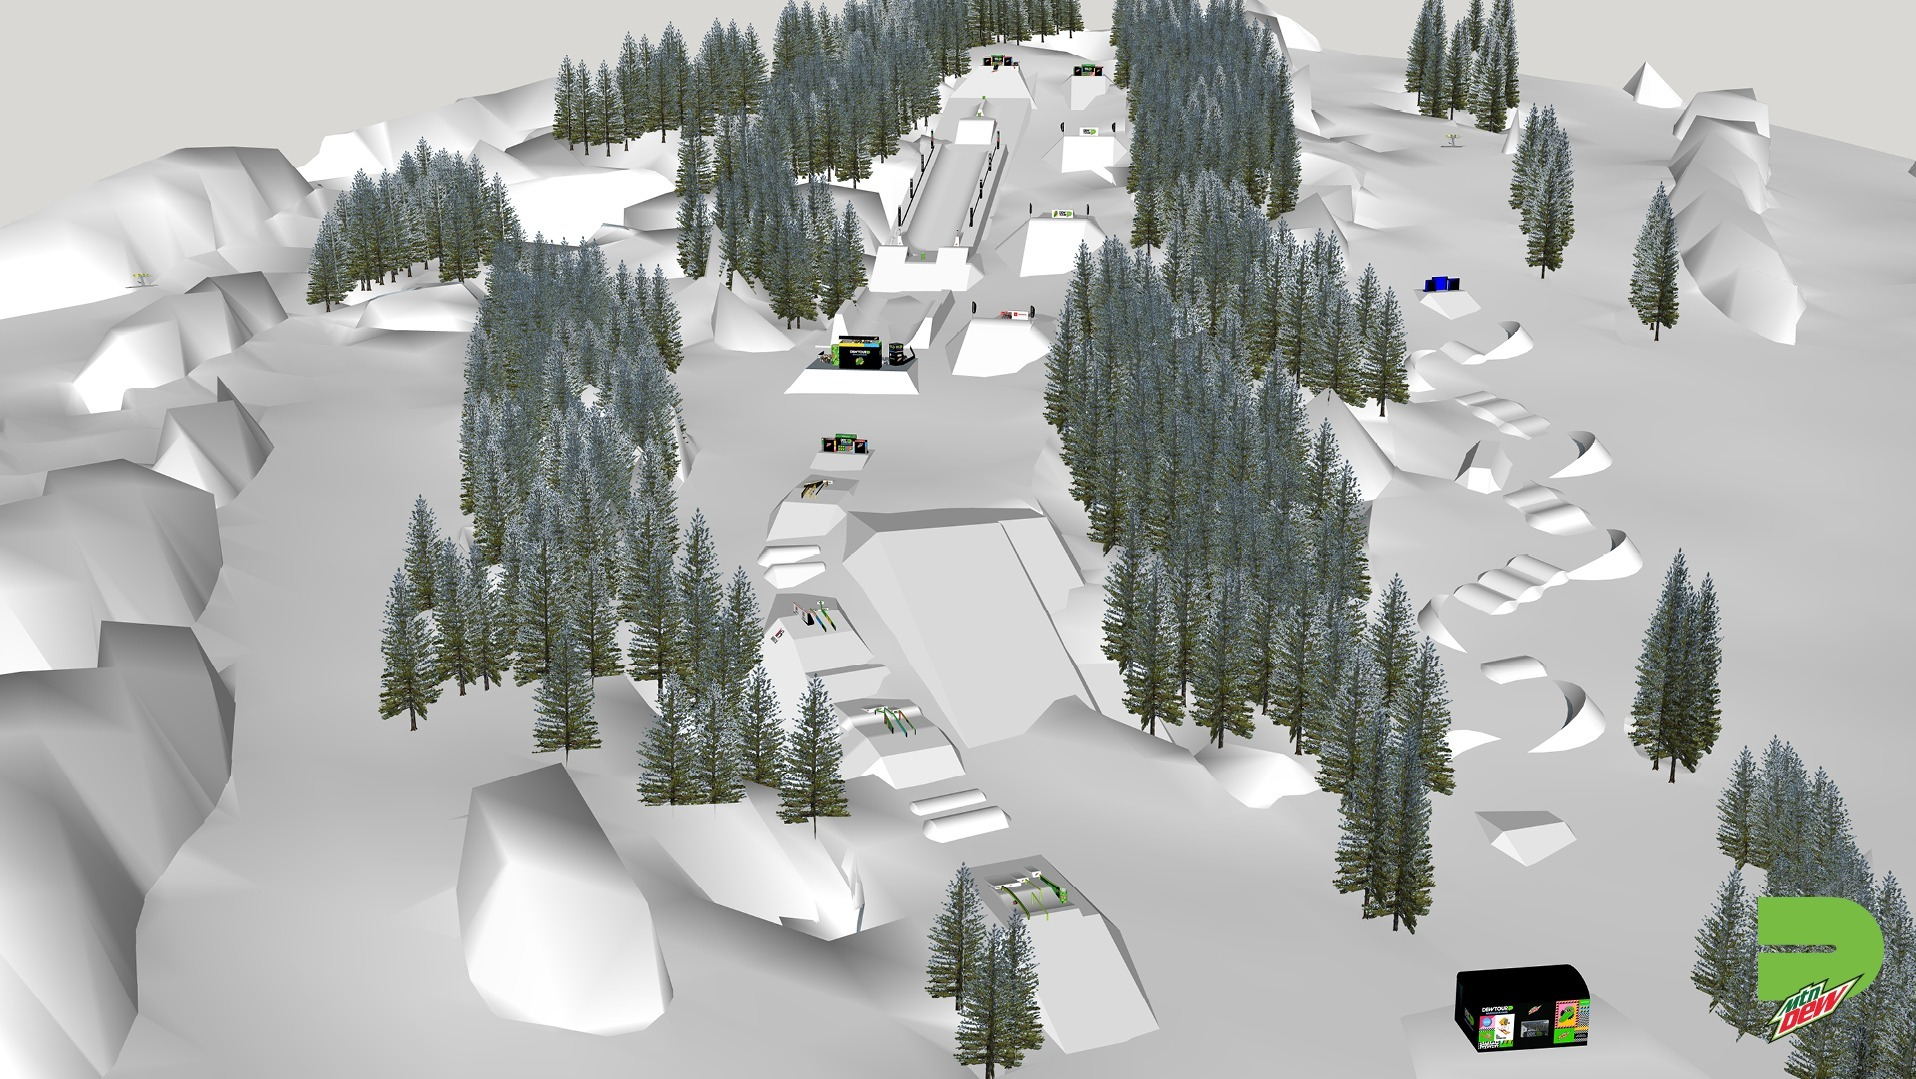 Dew Tour 2018 Event Preview: Course Preview, Riders, and more.